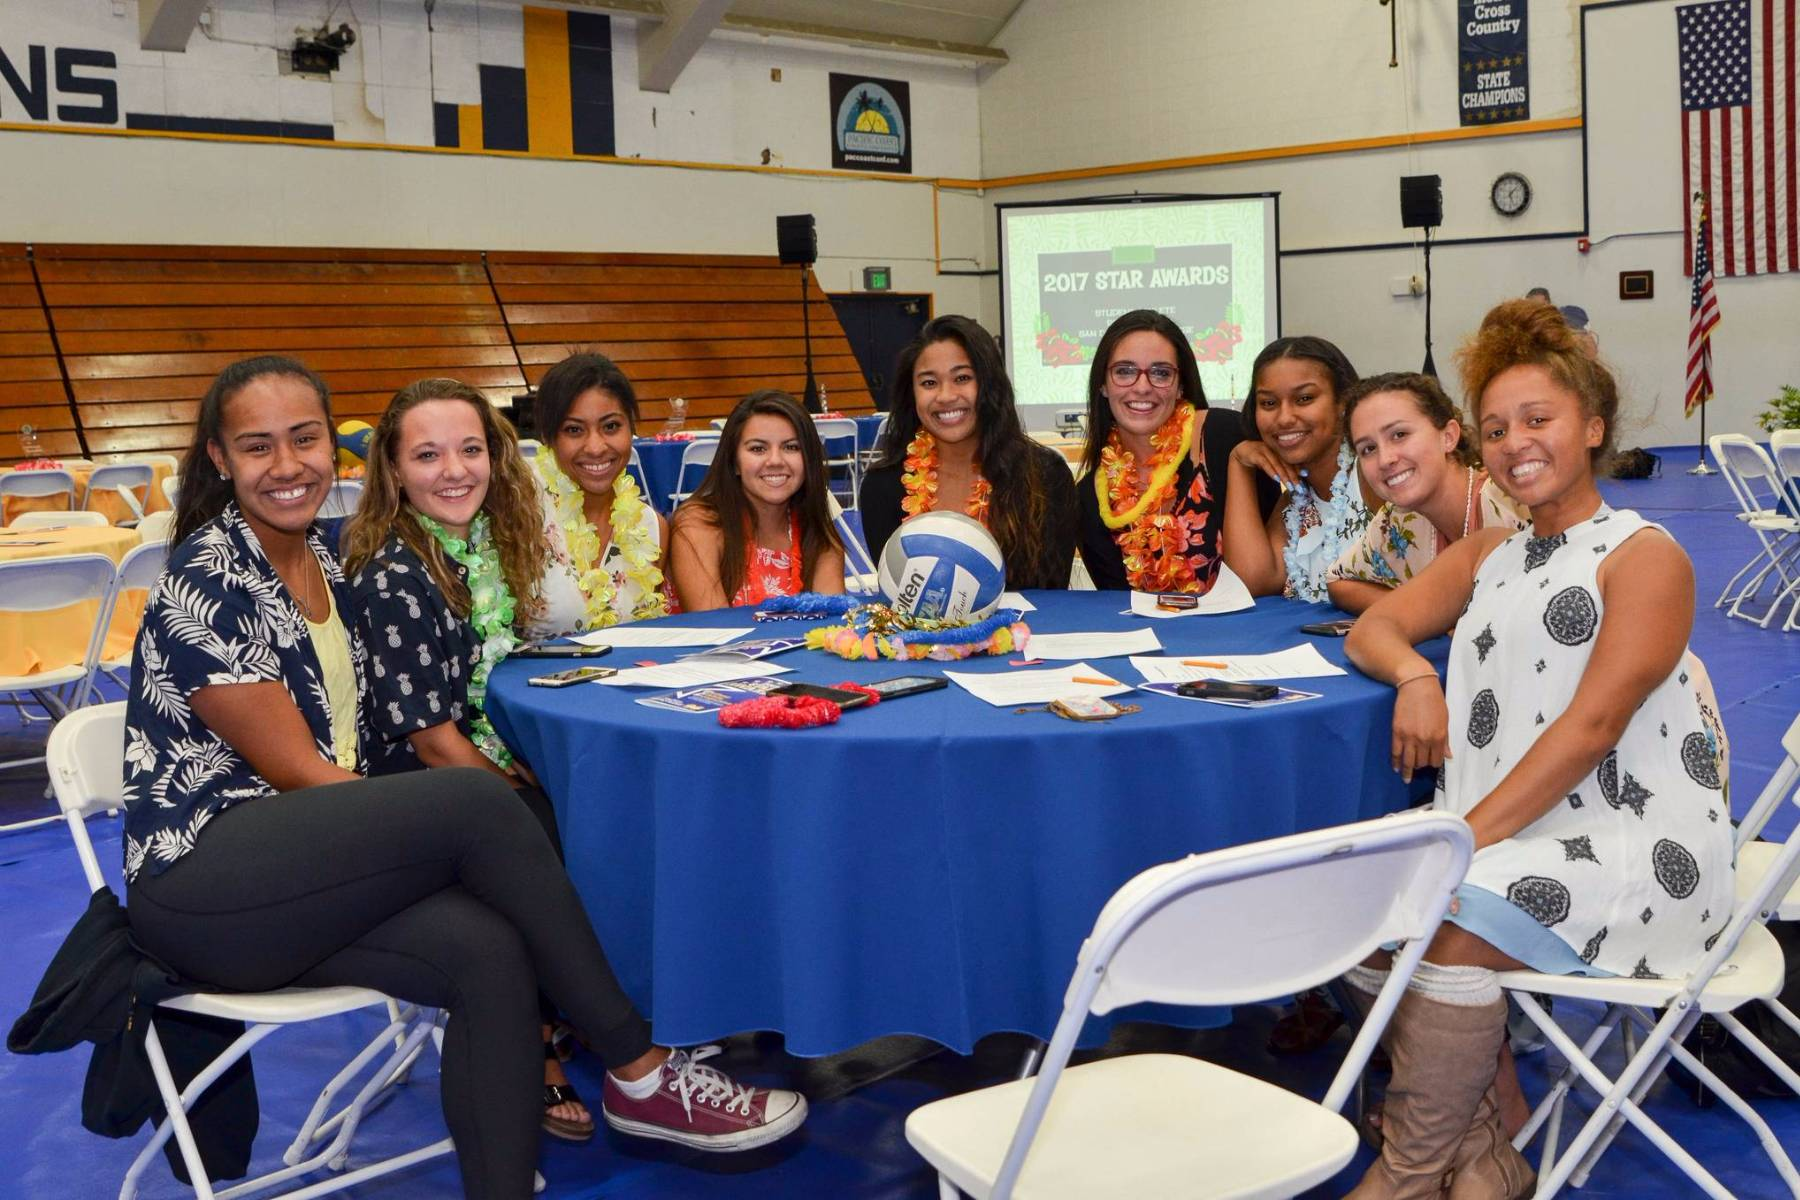 For a full decade, San Diego Mesa College has been honoring Olympian student athletes for their hard work on the fields, pools and courts, as well as in the classrooms and community, as the tradition continued during a STAR (STudent Athlete Recognition) Awards ceremony and luncheon on Tuesday, May 9.